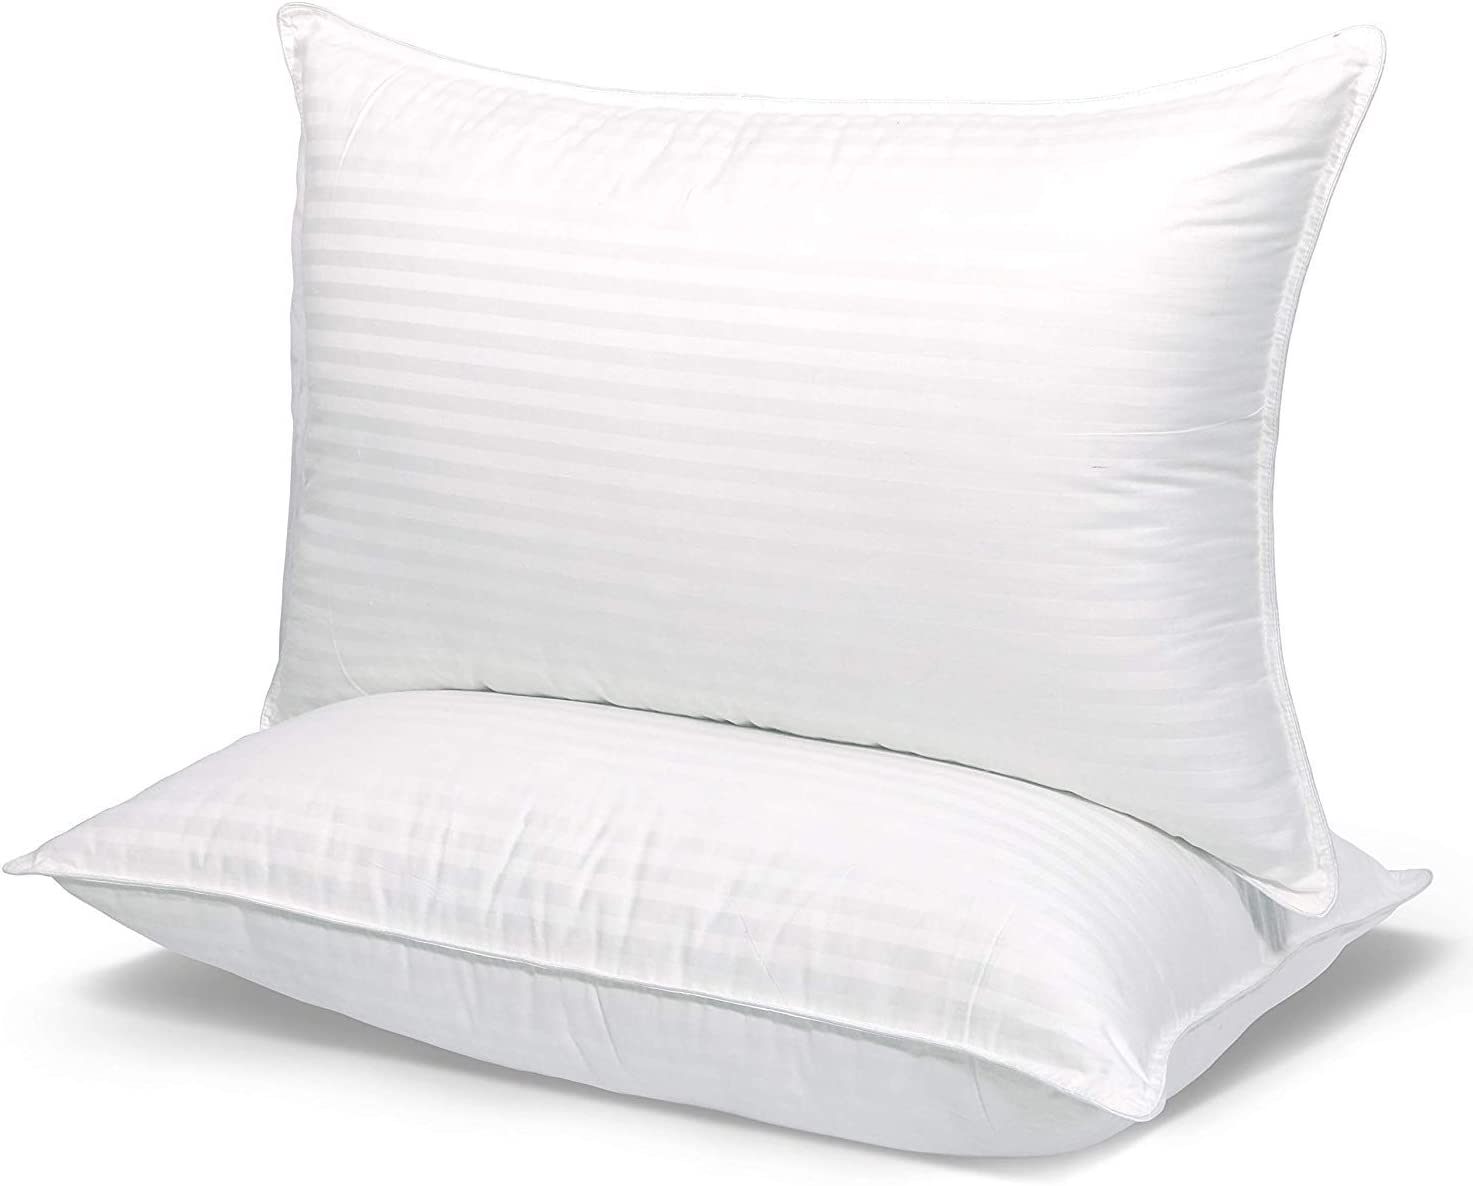 COZYDREAM Hotel Quality Pillows for Sleeping [Set of Two] Premium Plush Fiber,Breathable Cotton Cover Skin-Friendly, King Size, White